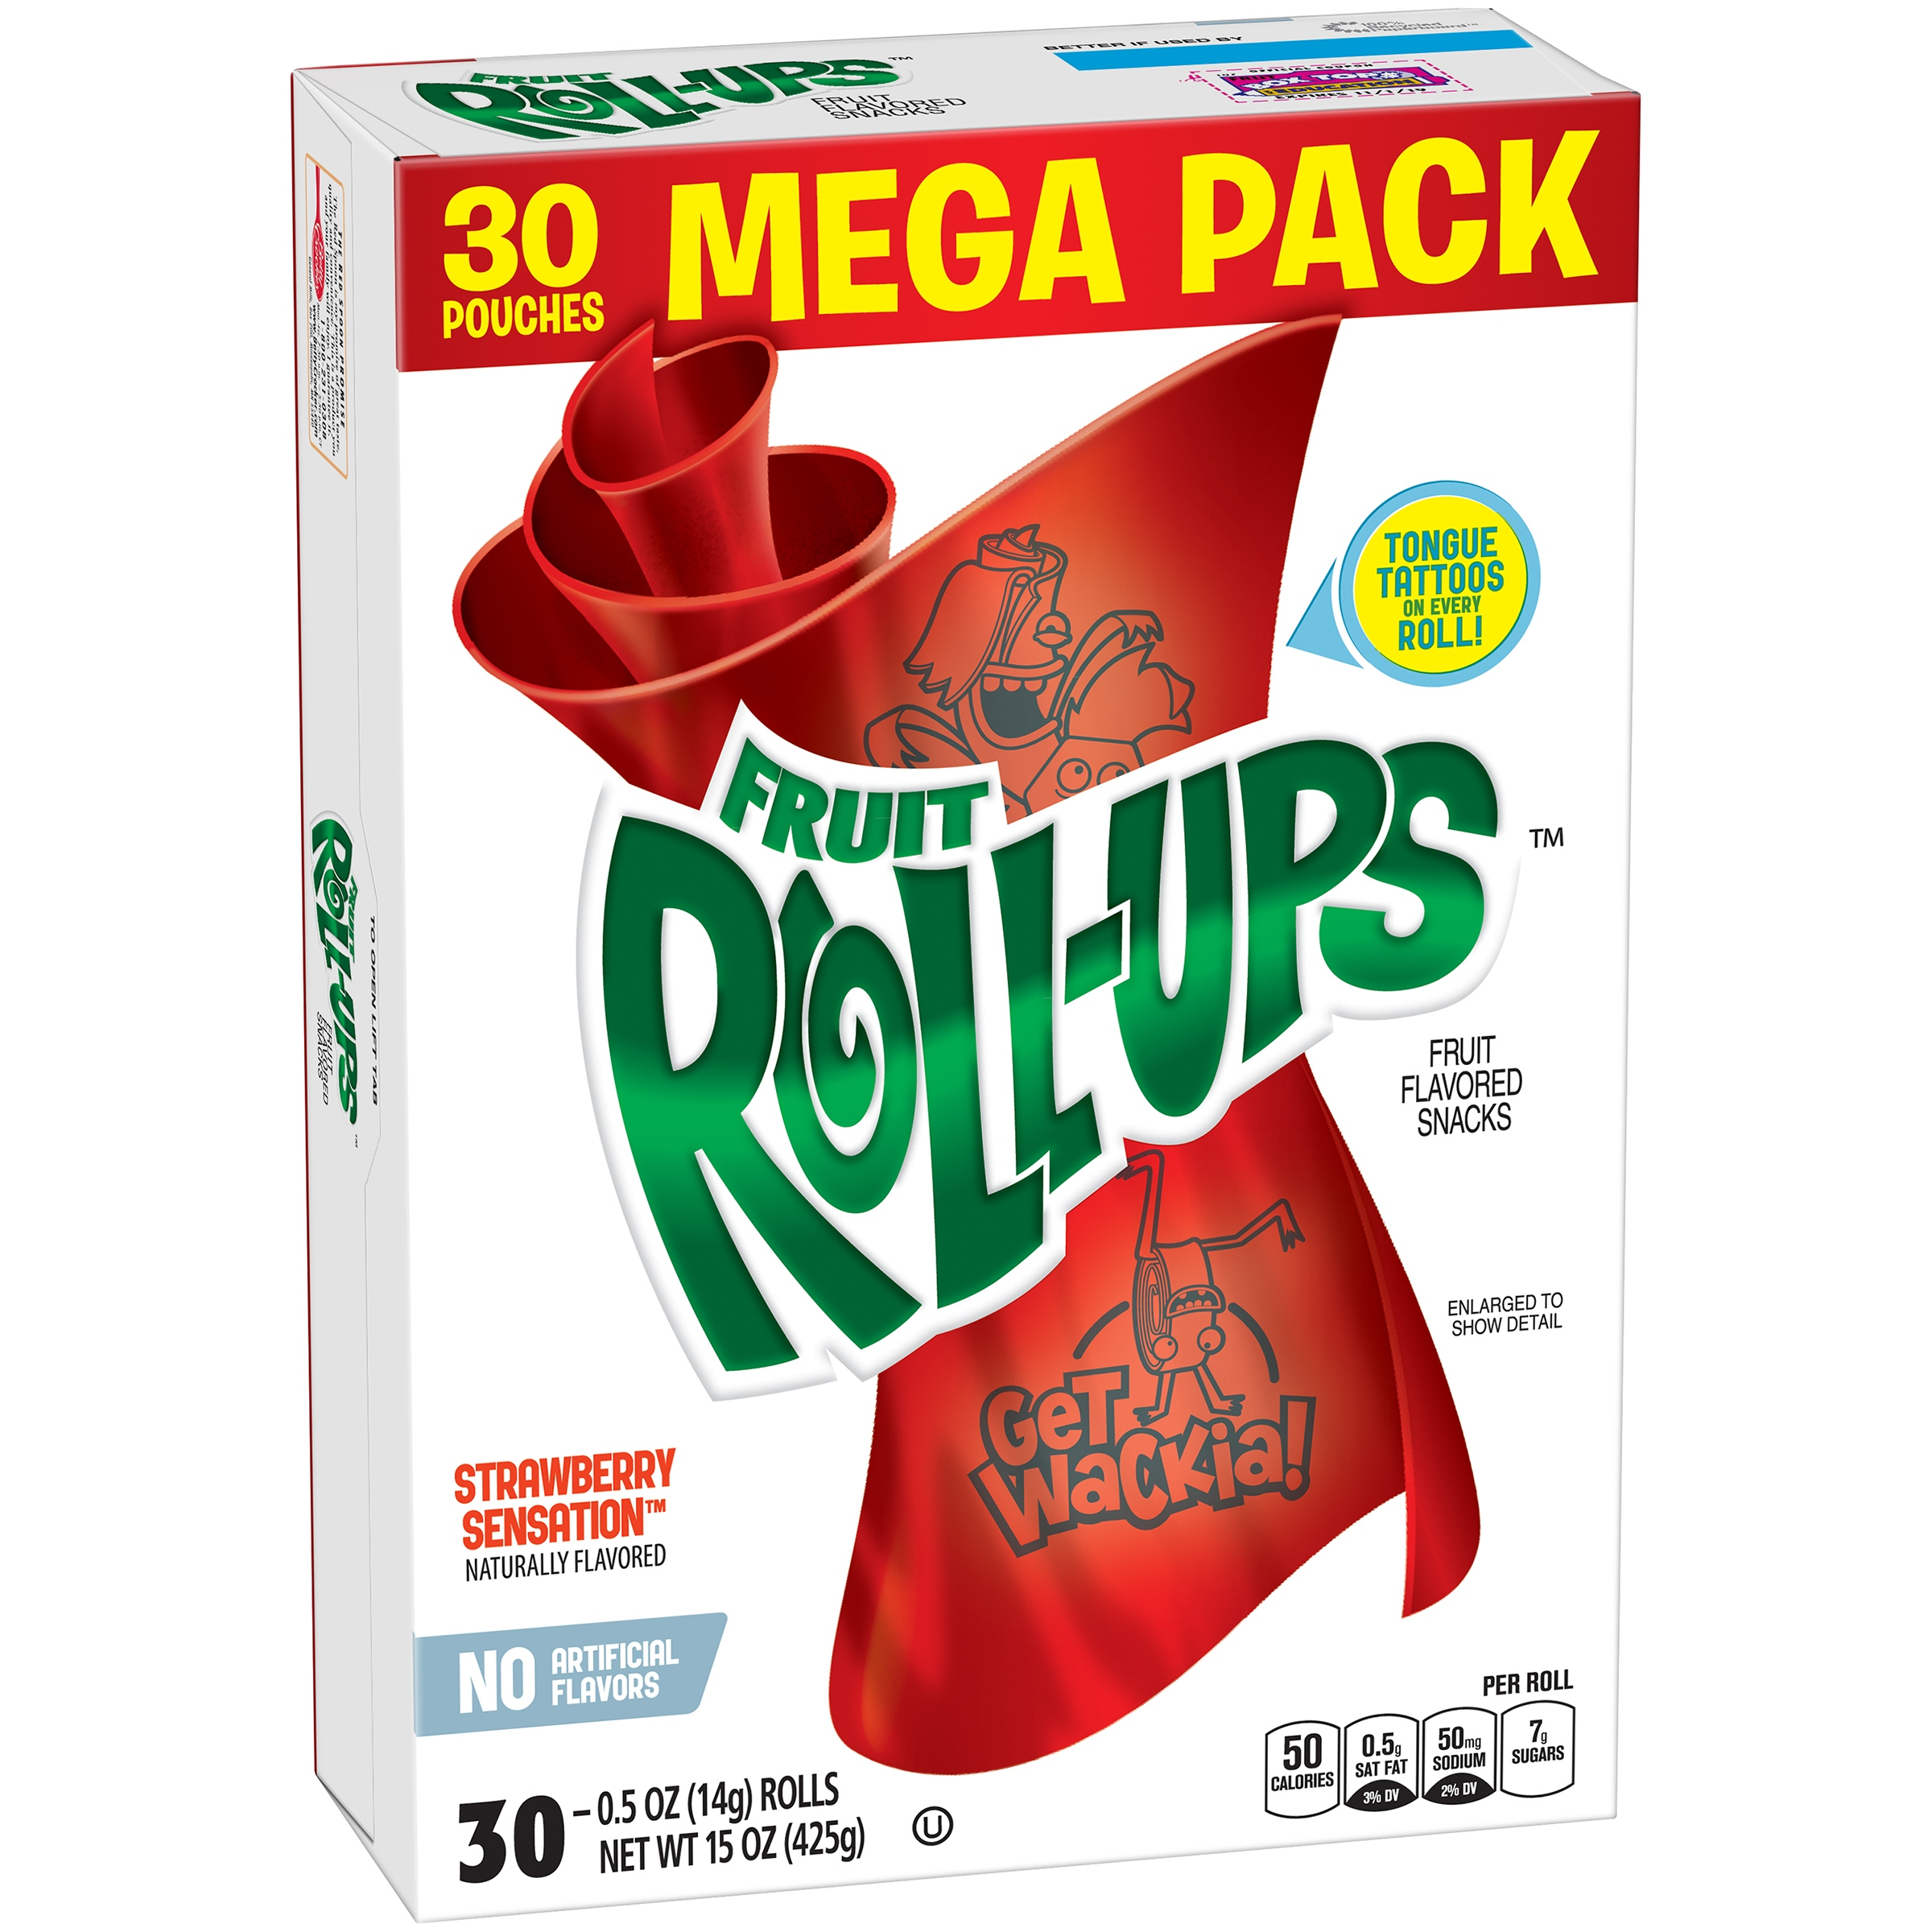 Betty Crocker® Fruit Roll-Ups Mega Pack, Strawberry Sensation, 30 Ct